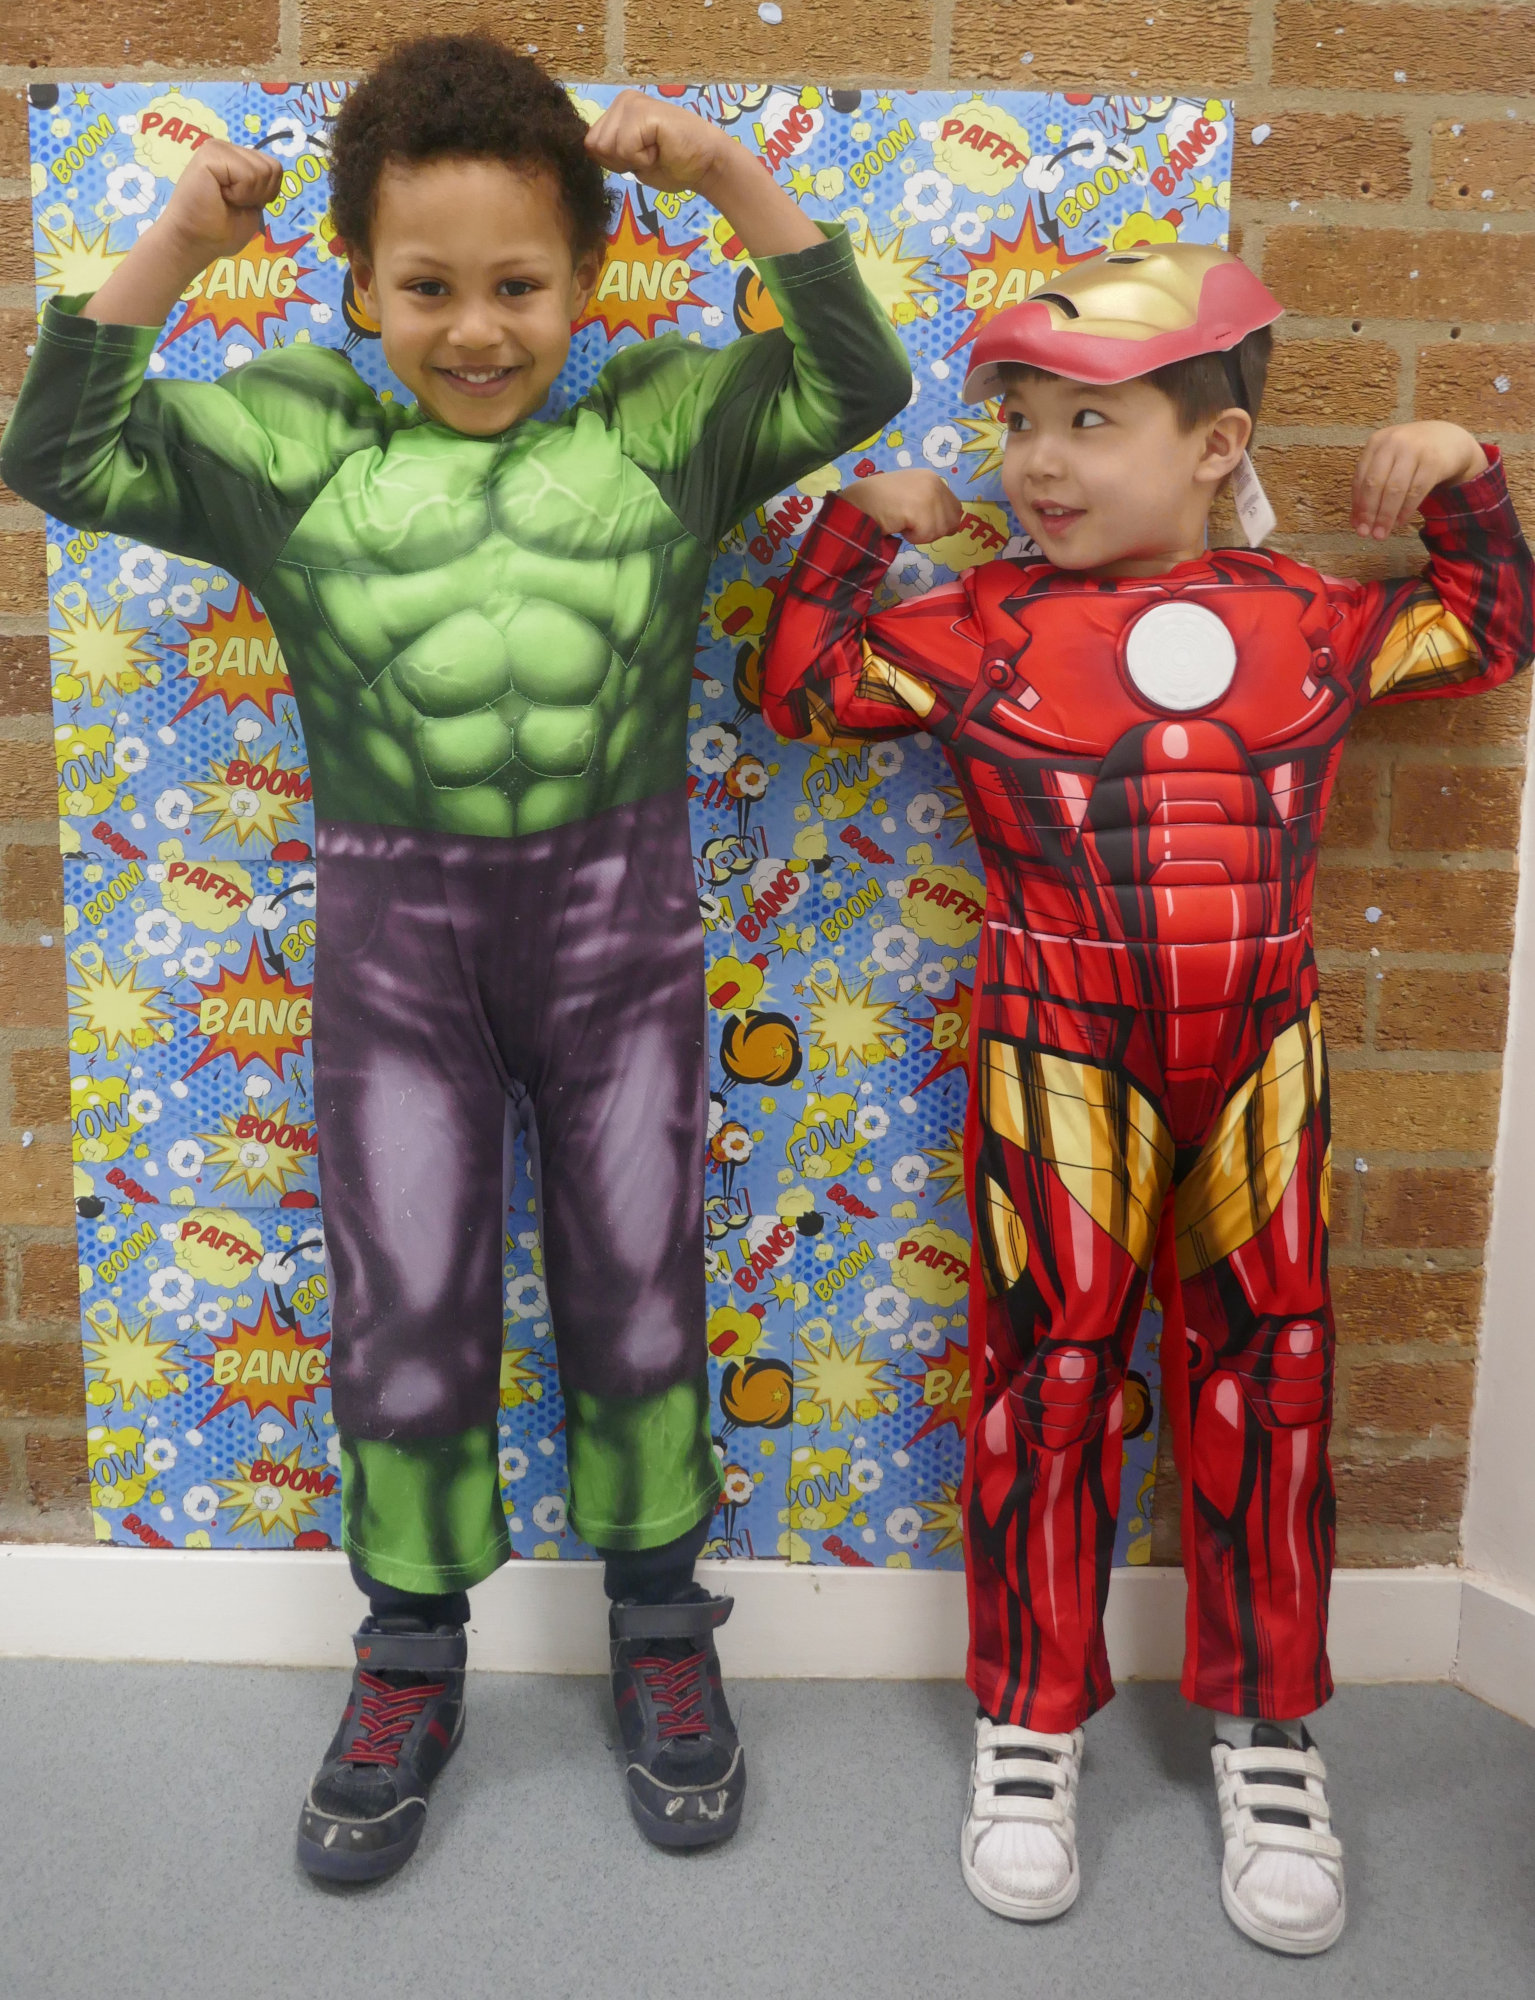 Children dressed up as super heroes